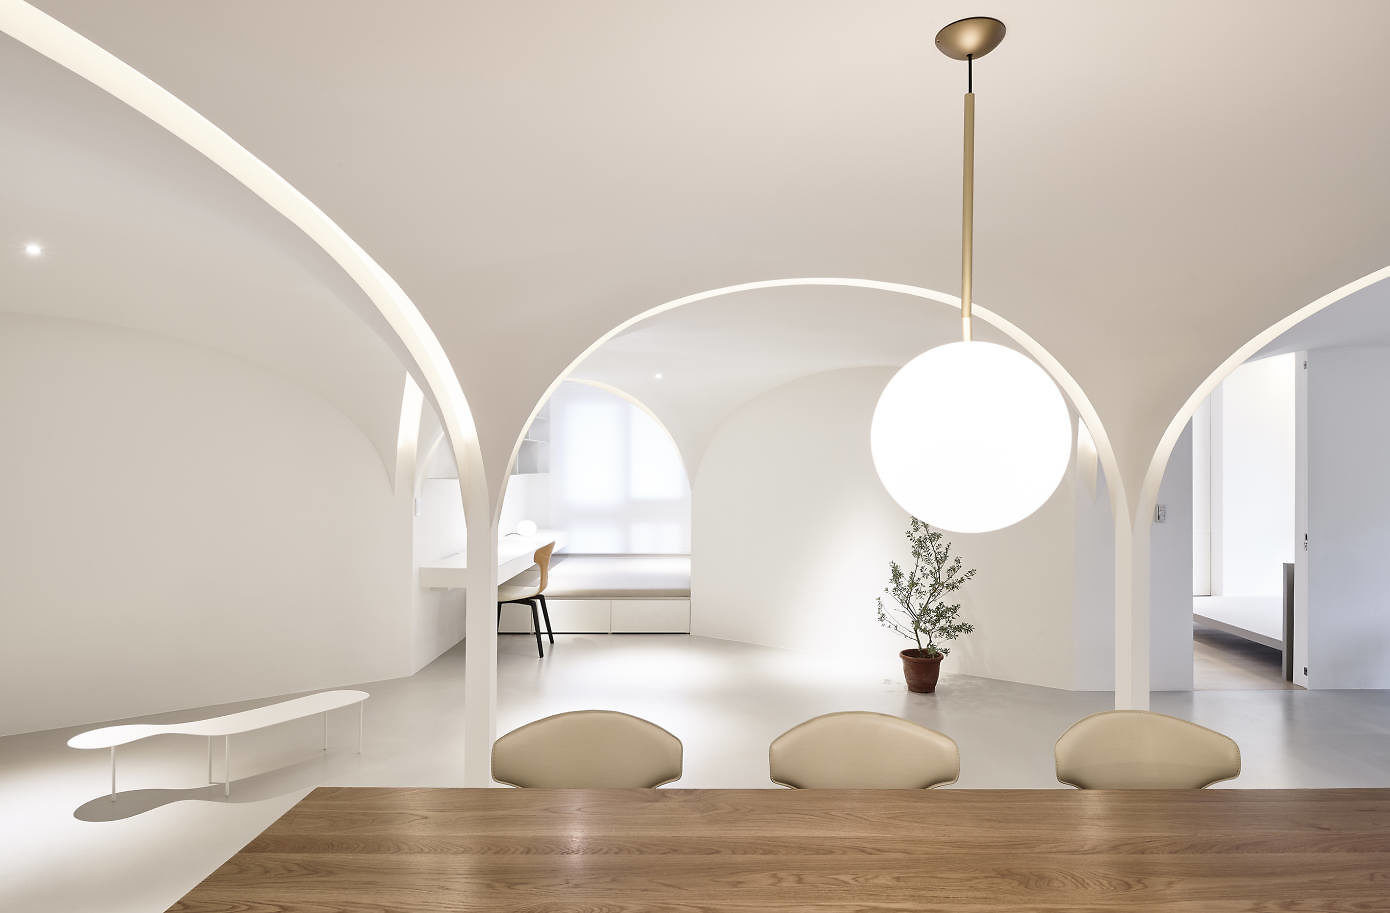 Sunny Apartment by Very Studio   Che Wang Architects